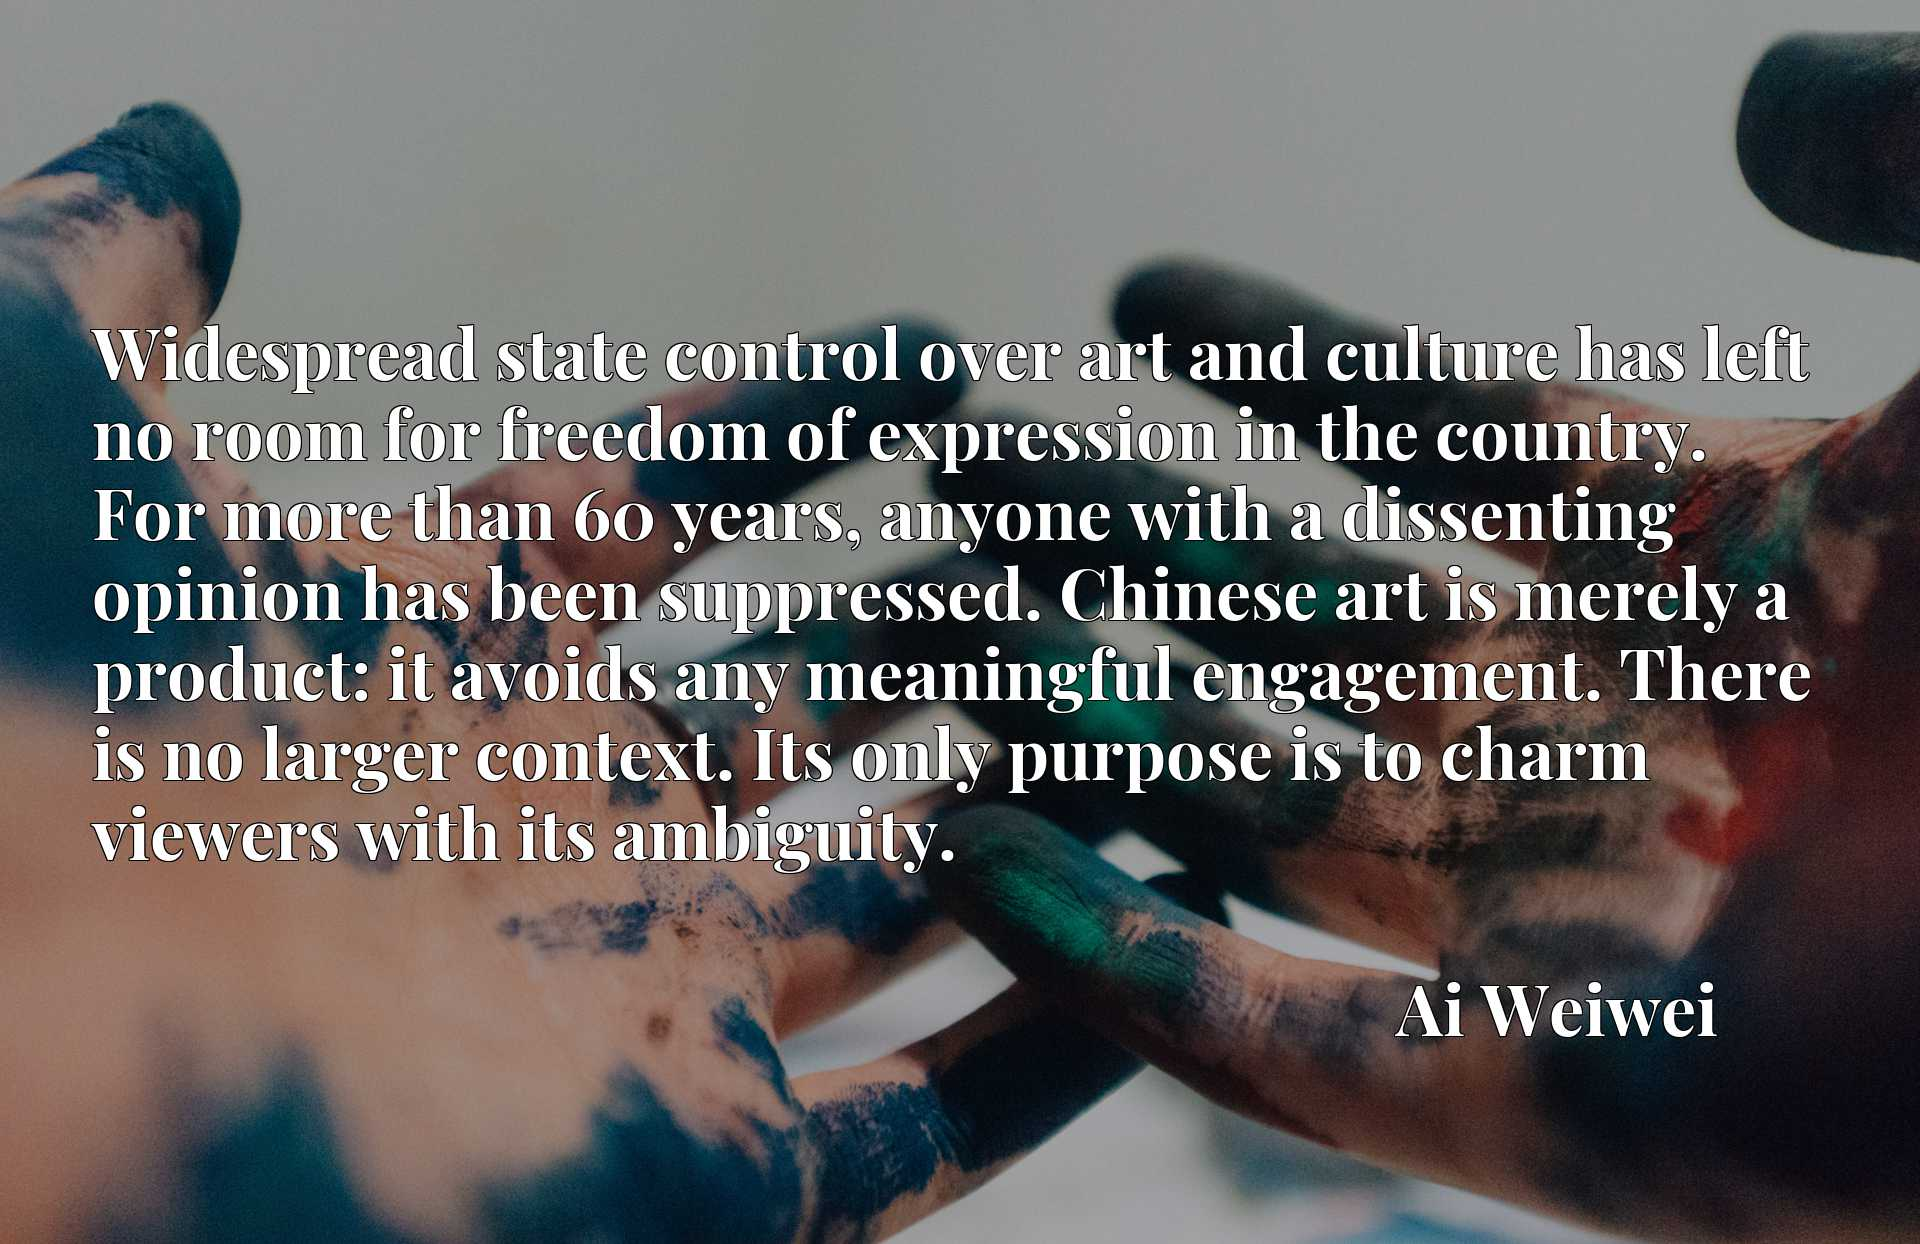 Widespread state control over art and culture has left no room for freedom of expression in the country. For more than 60 years, anyone with a dissenting opinion has been suppressed. Chinese art is merely a product: it avoids any meaningful engagement. There is no larger context. Its only purpose is to charm viewers with its ambiguity.